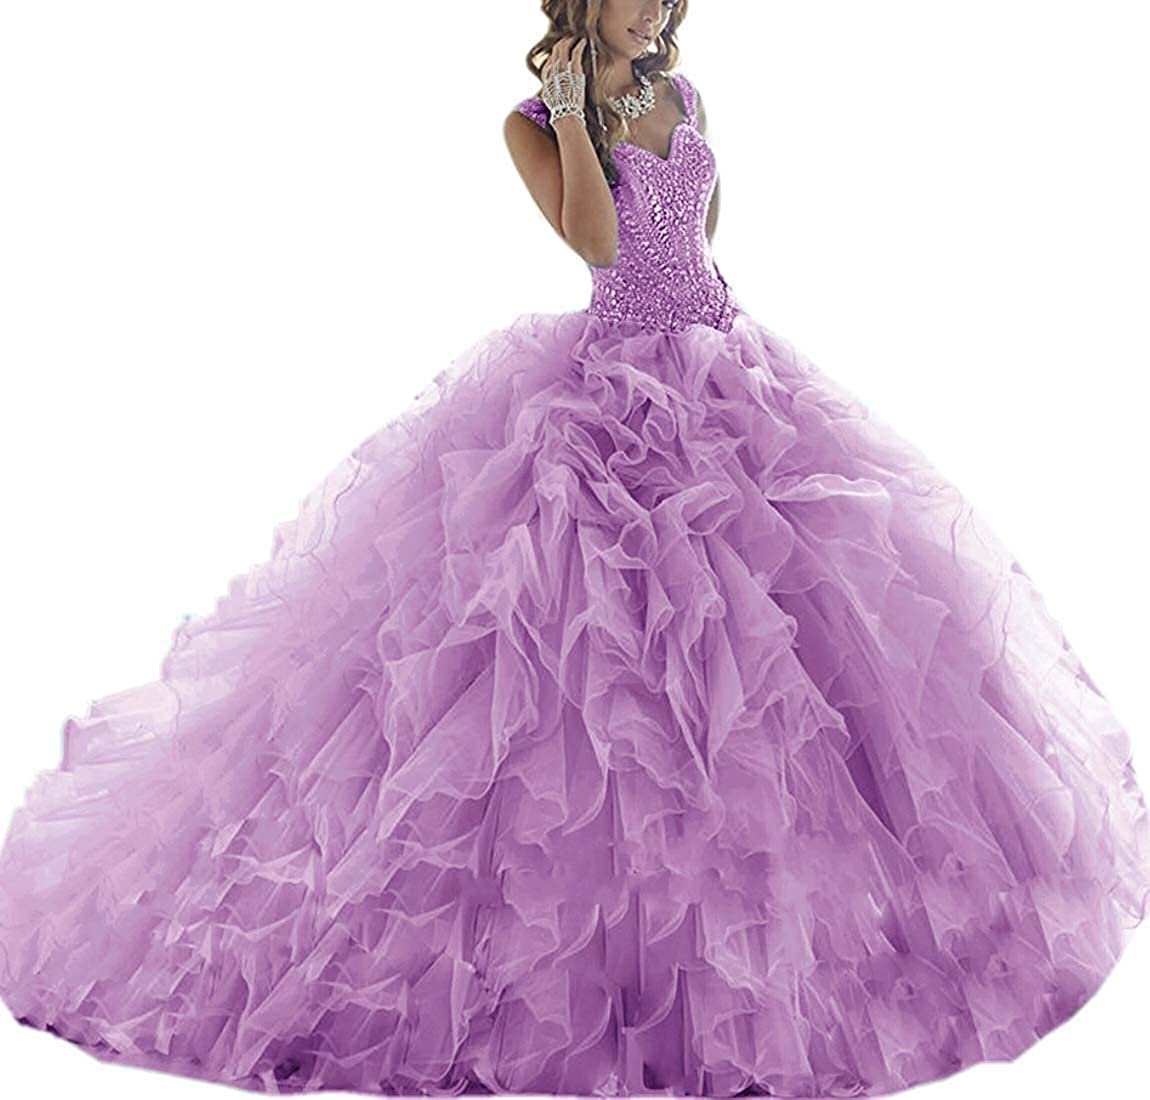 purplec ASBridal Quinceanera Dresses Long Prom Party Dress Sweet 16 Crystals Beads Formal Ball Gowns Orangza